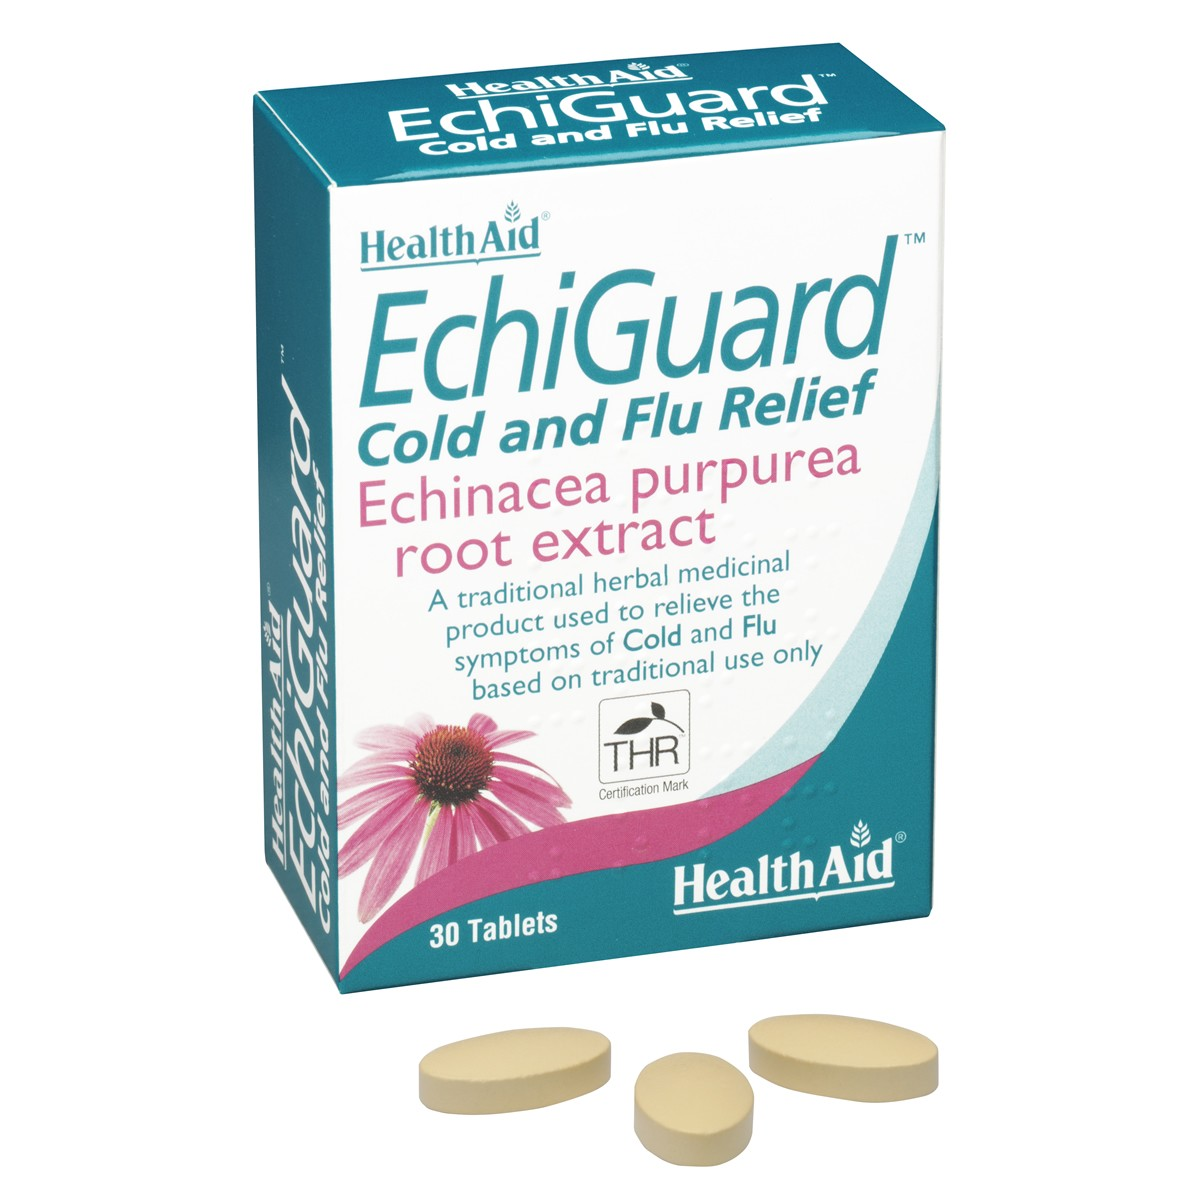 HealthAid EchiGuard Cold and Flu Relief